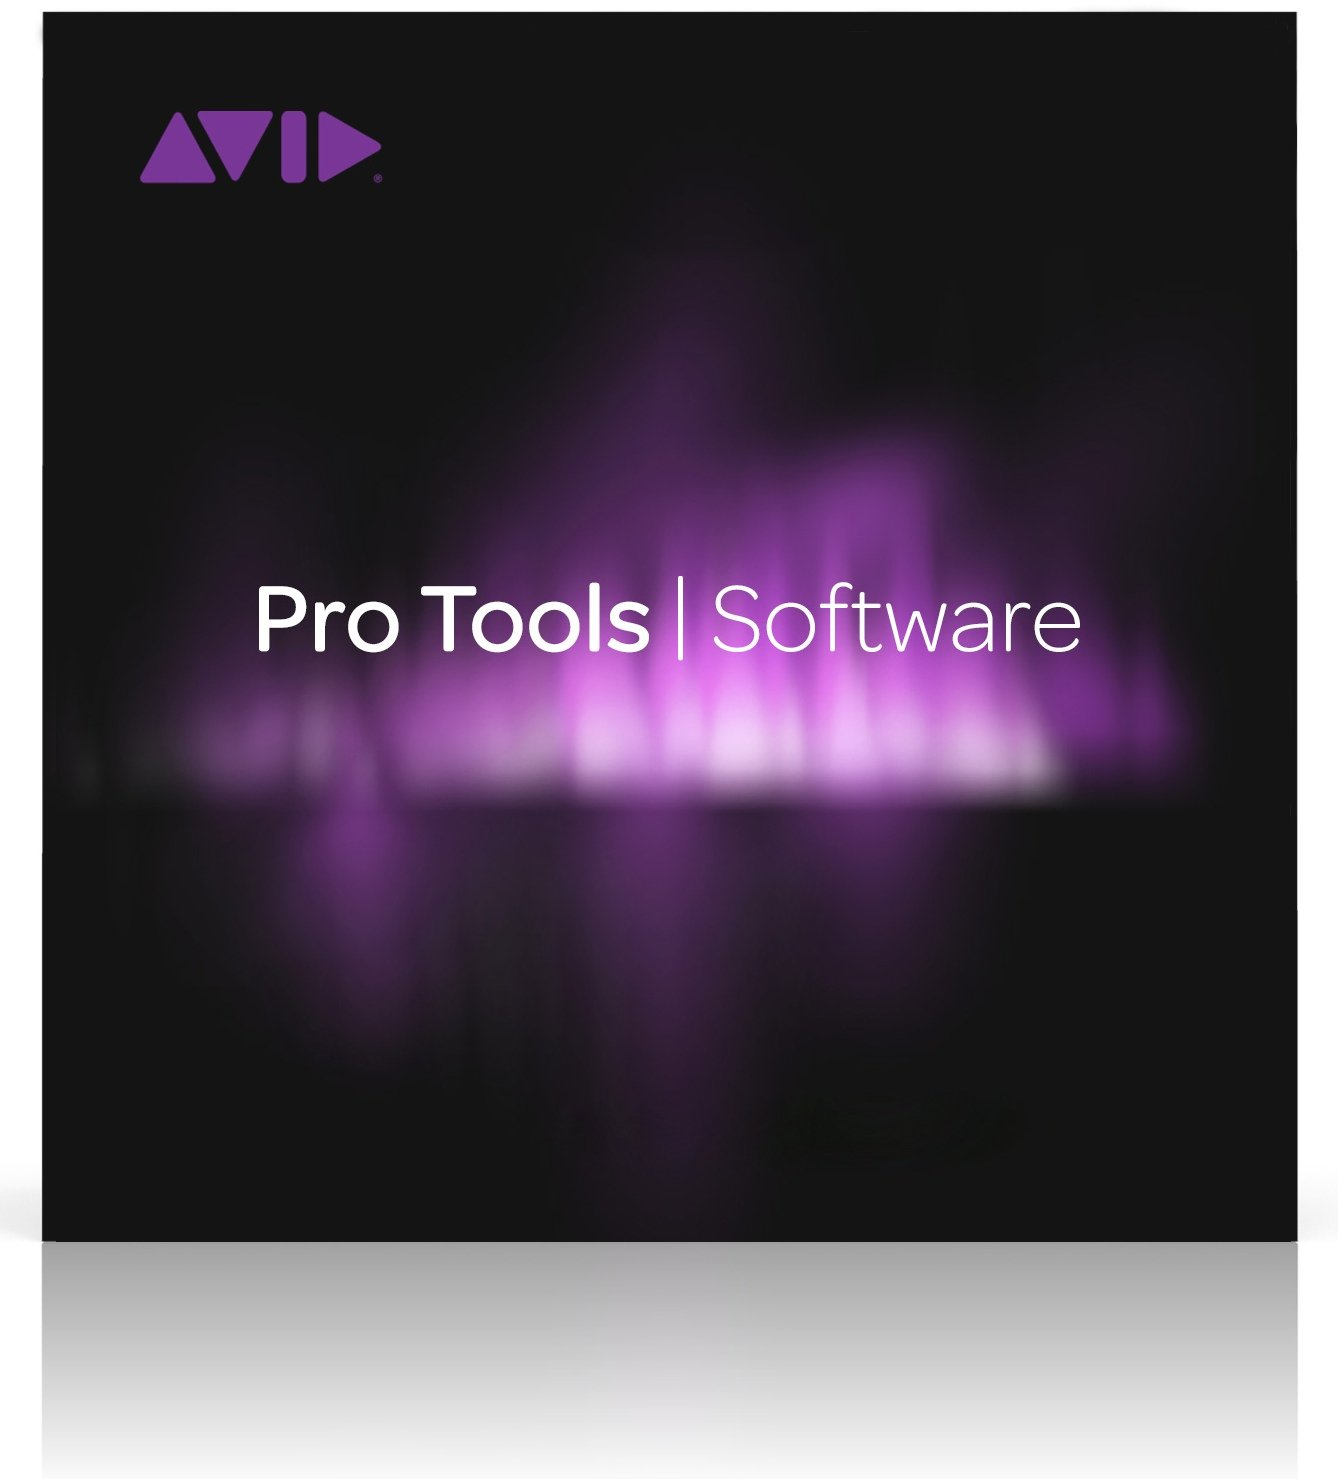 image of Avid ProTools Software box